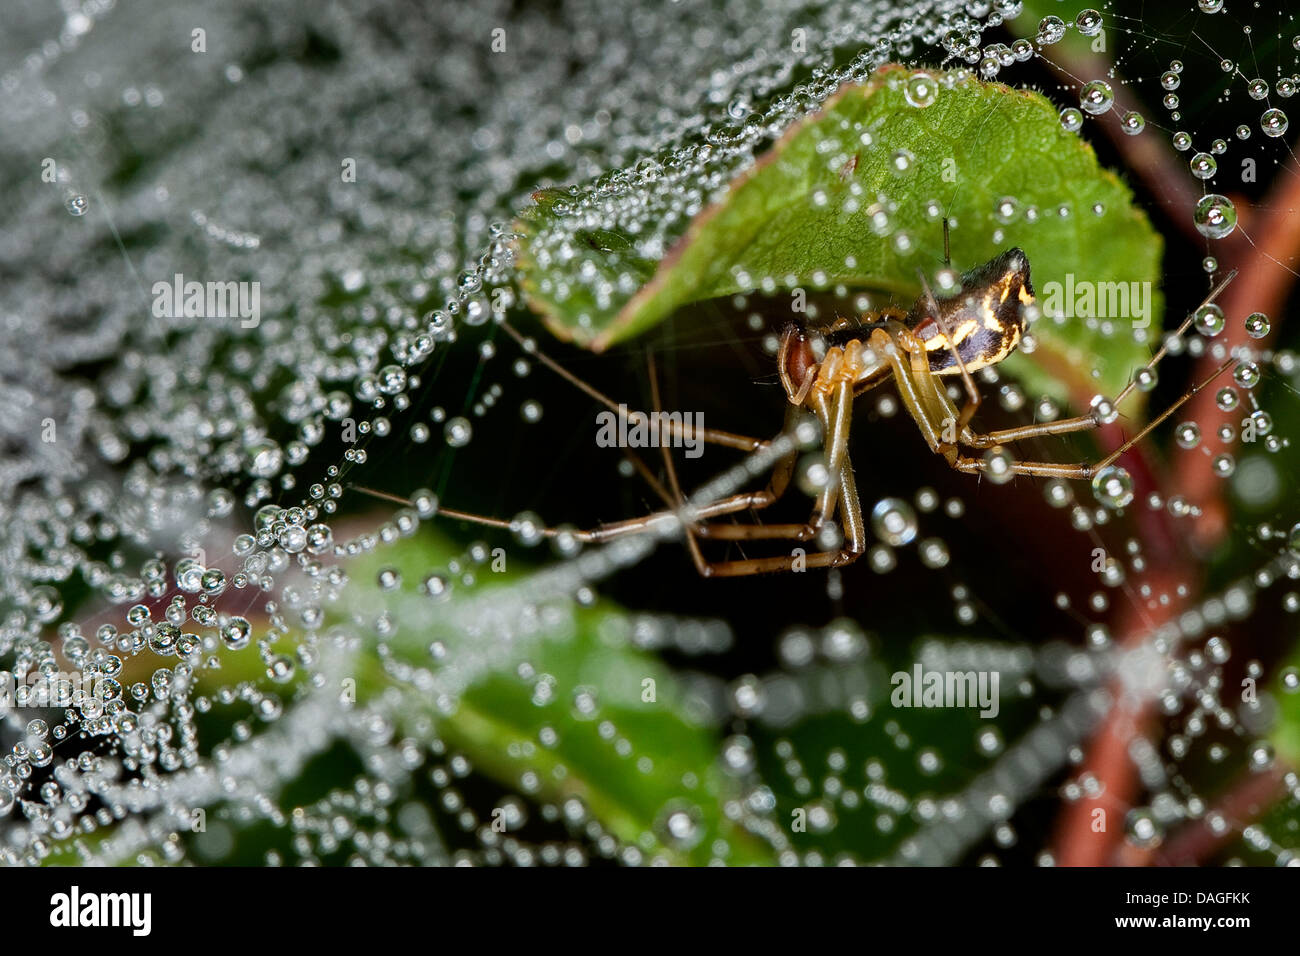 Sheet-web weaver, Line-weaving spider, Line weaver (Linyphia triangularis), in spiderweb with dewdrops, Germany - Stock Image